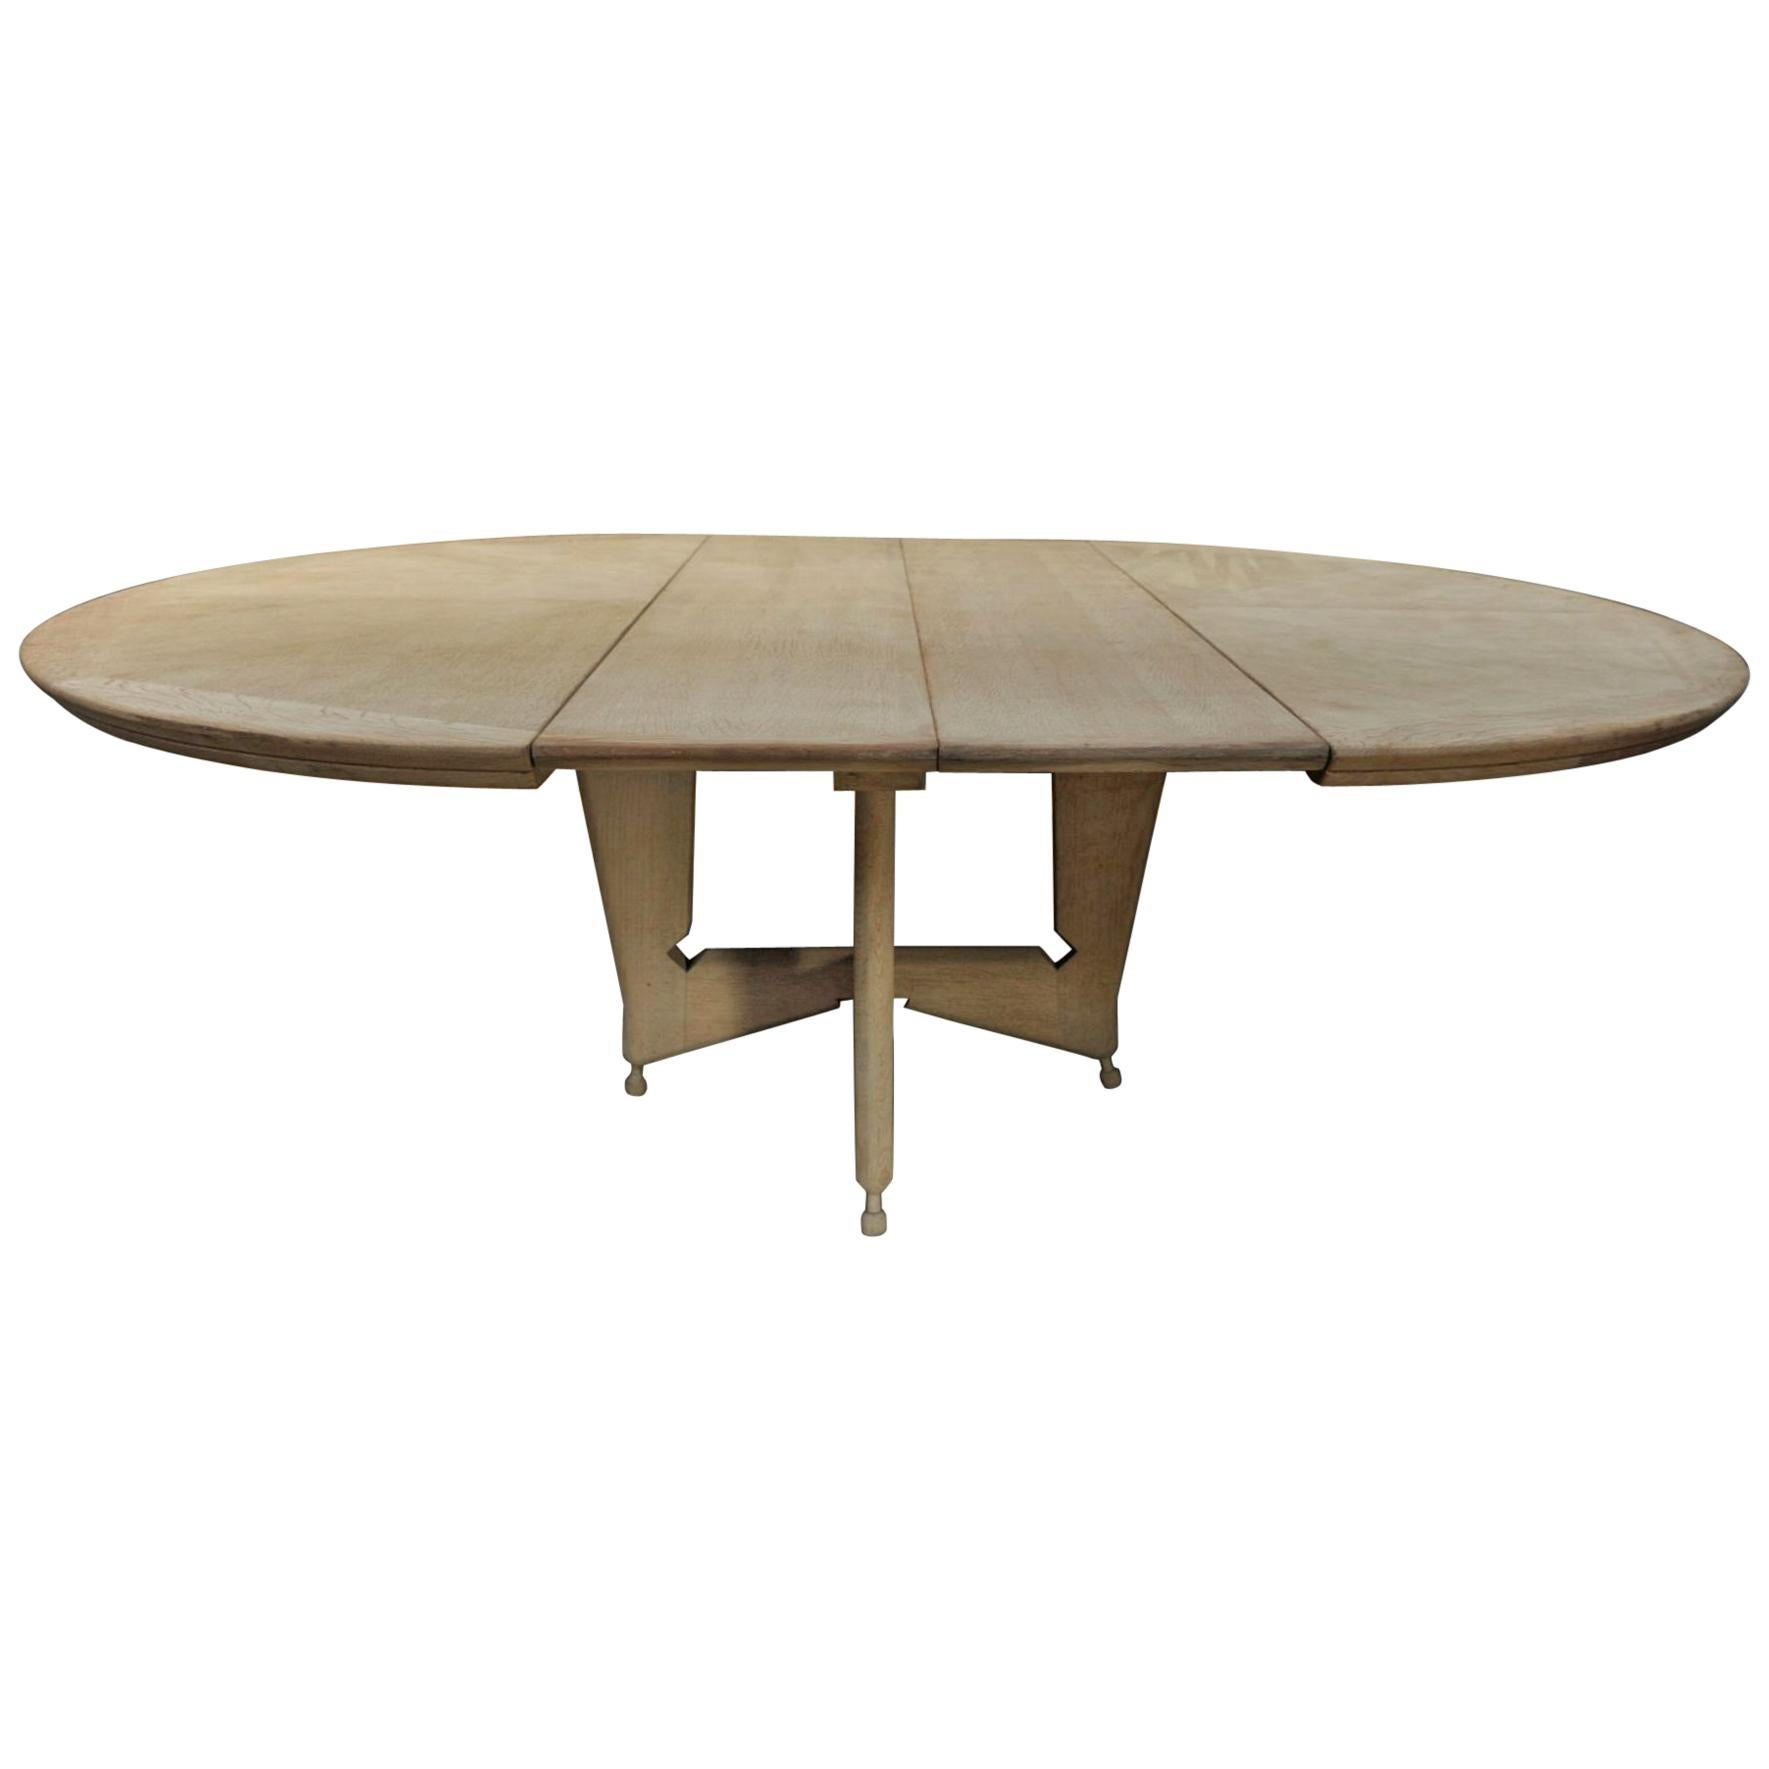 Table Ovale Oak Round Or Ovale Dining Table Guillerme Chambron 1950s